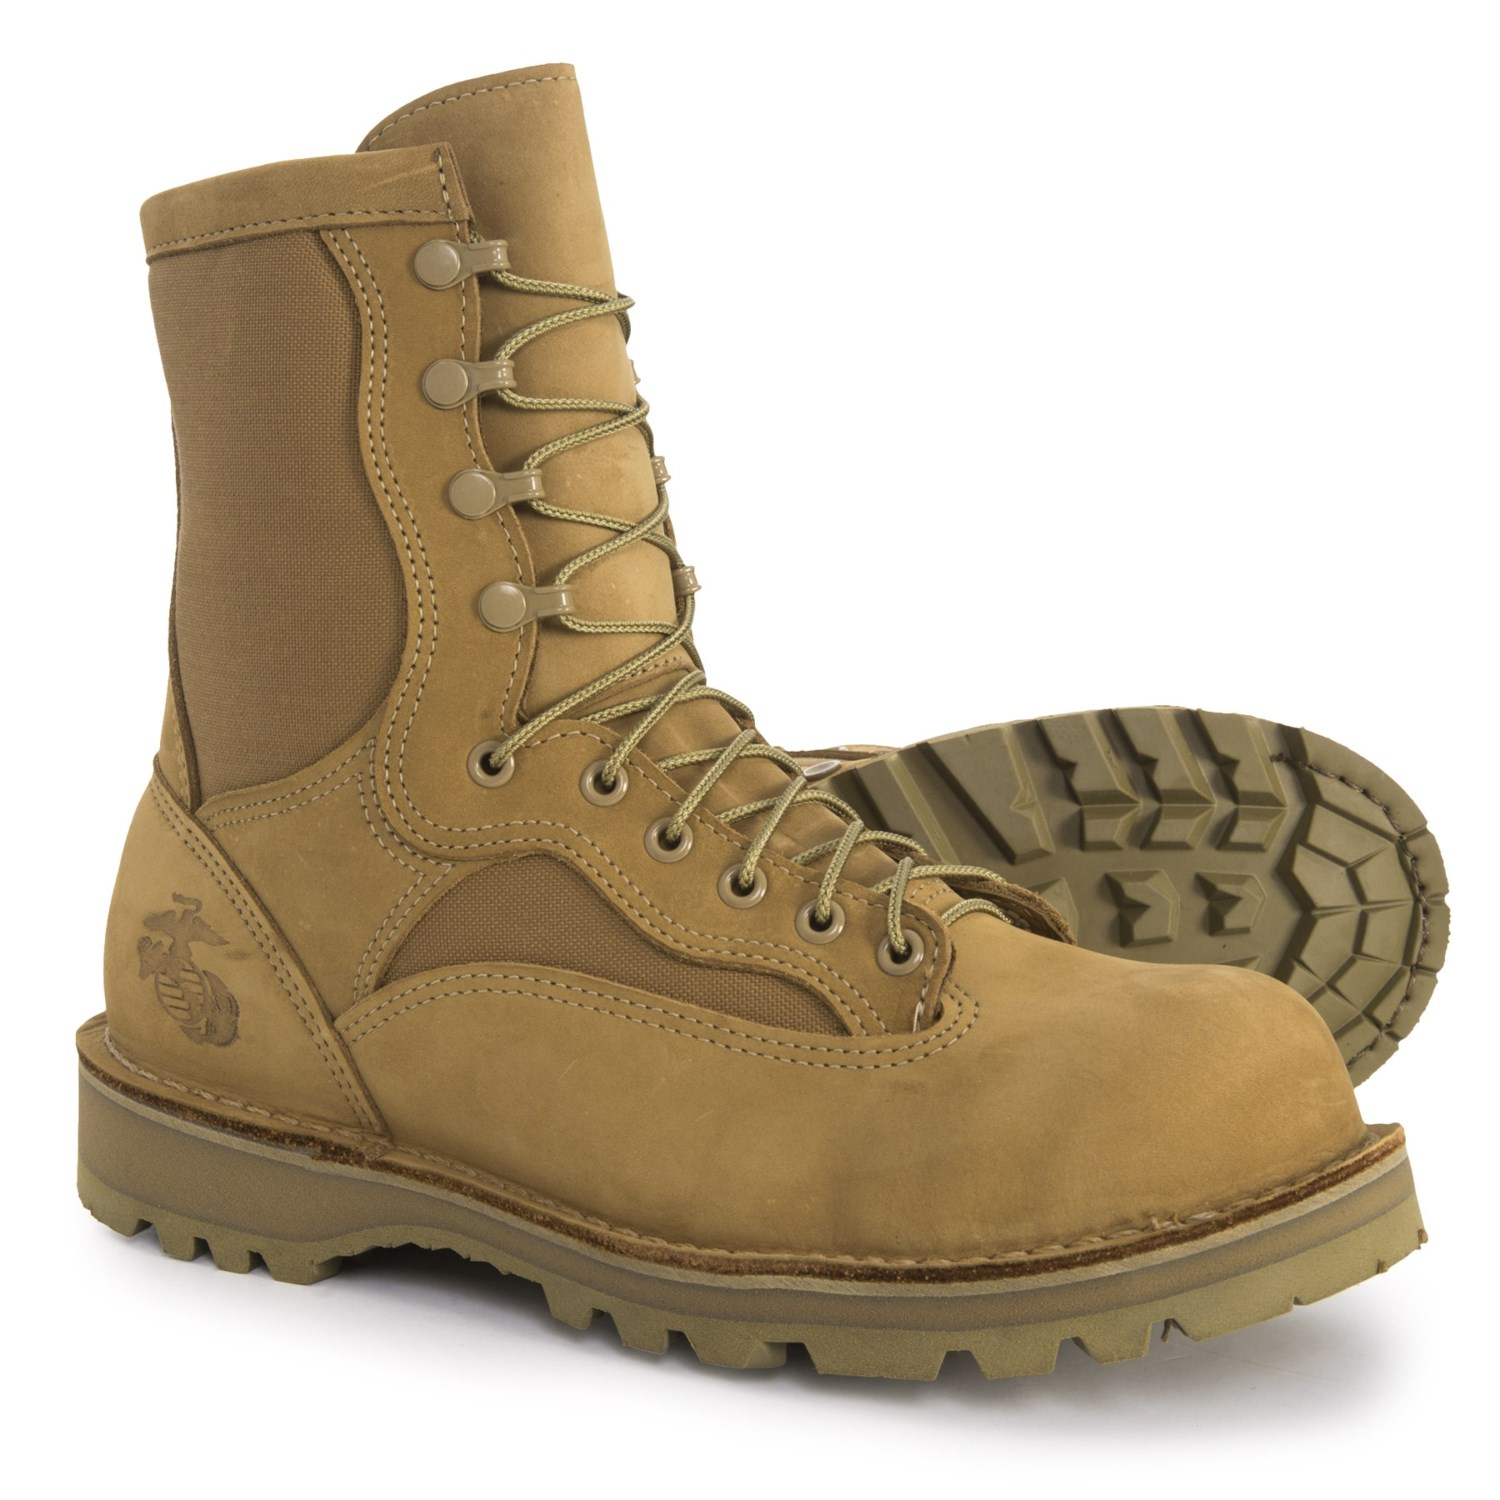 e579fb99616 Danner Marine Expeditionary Boots - Steel Safety Toe, Leather (For Men)